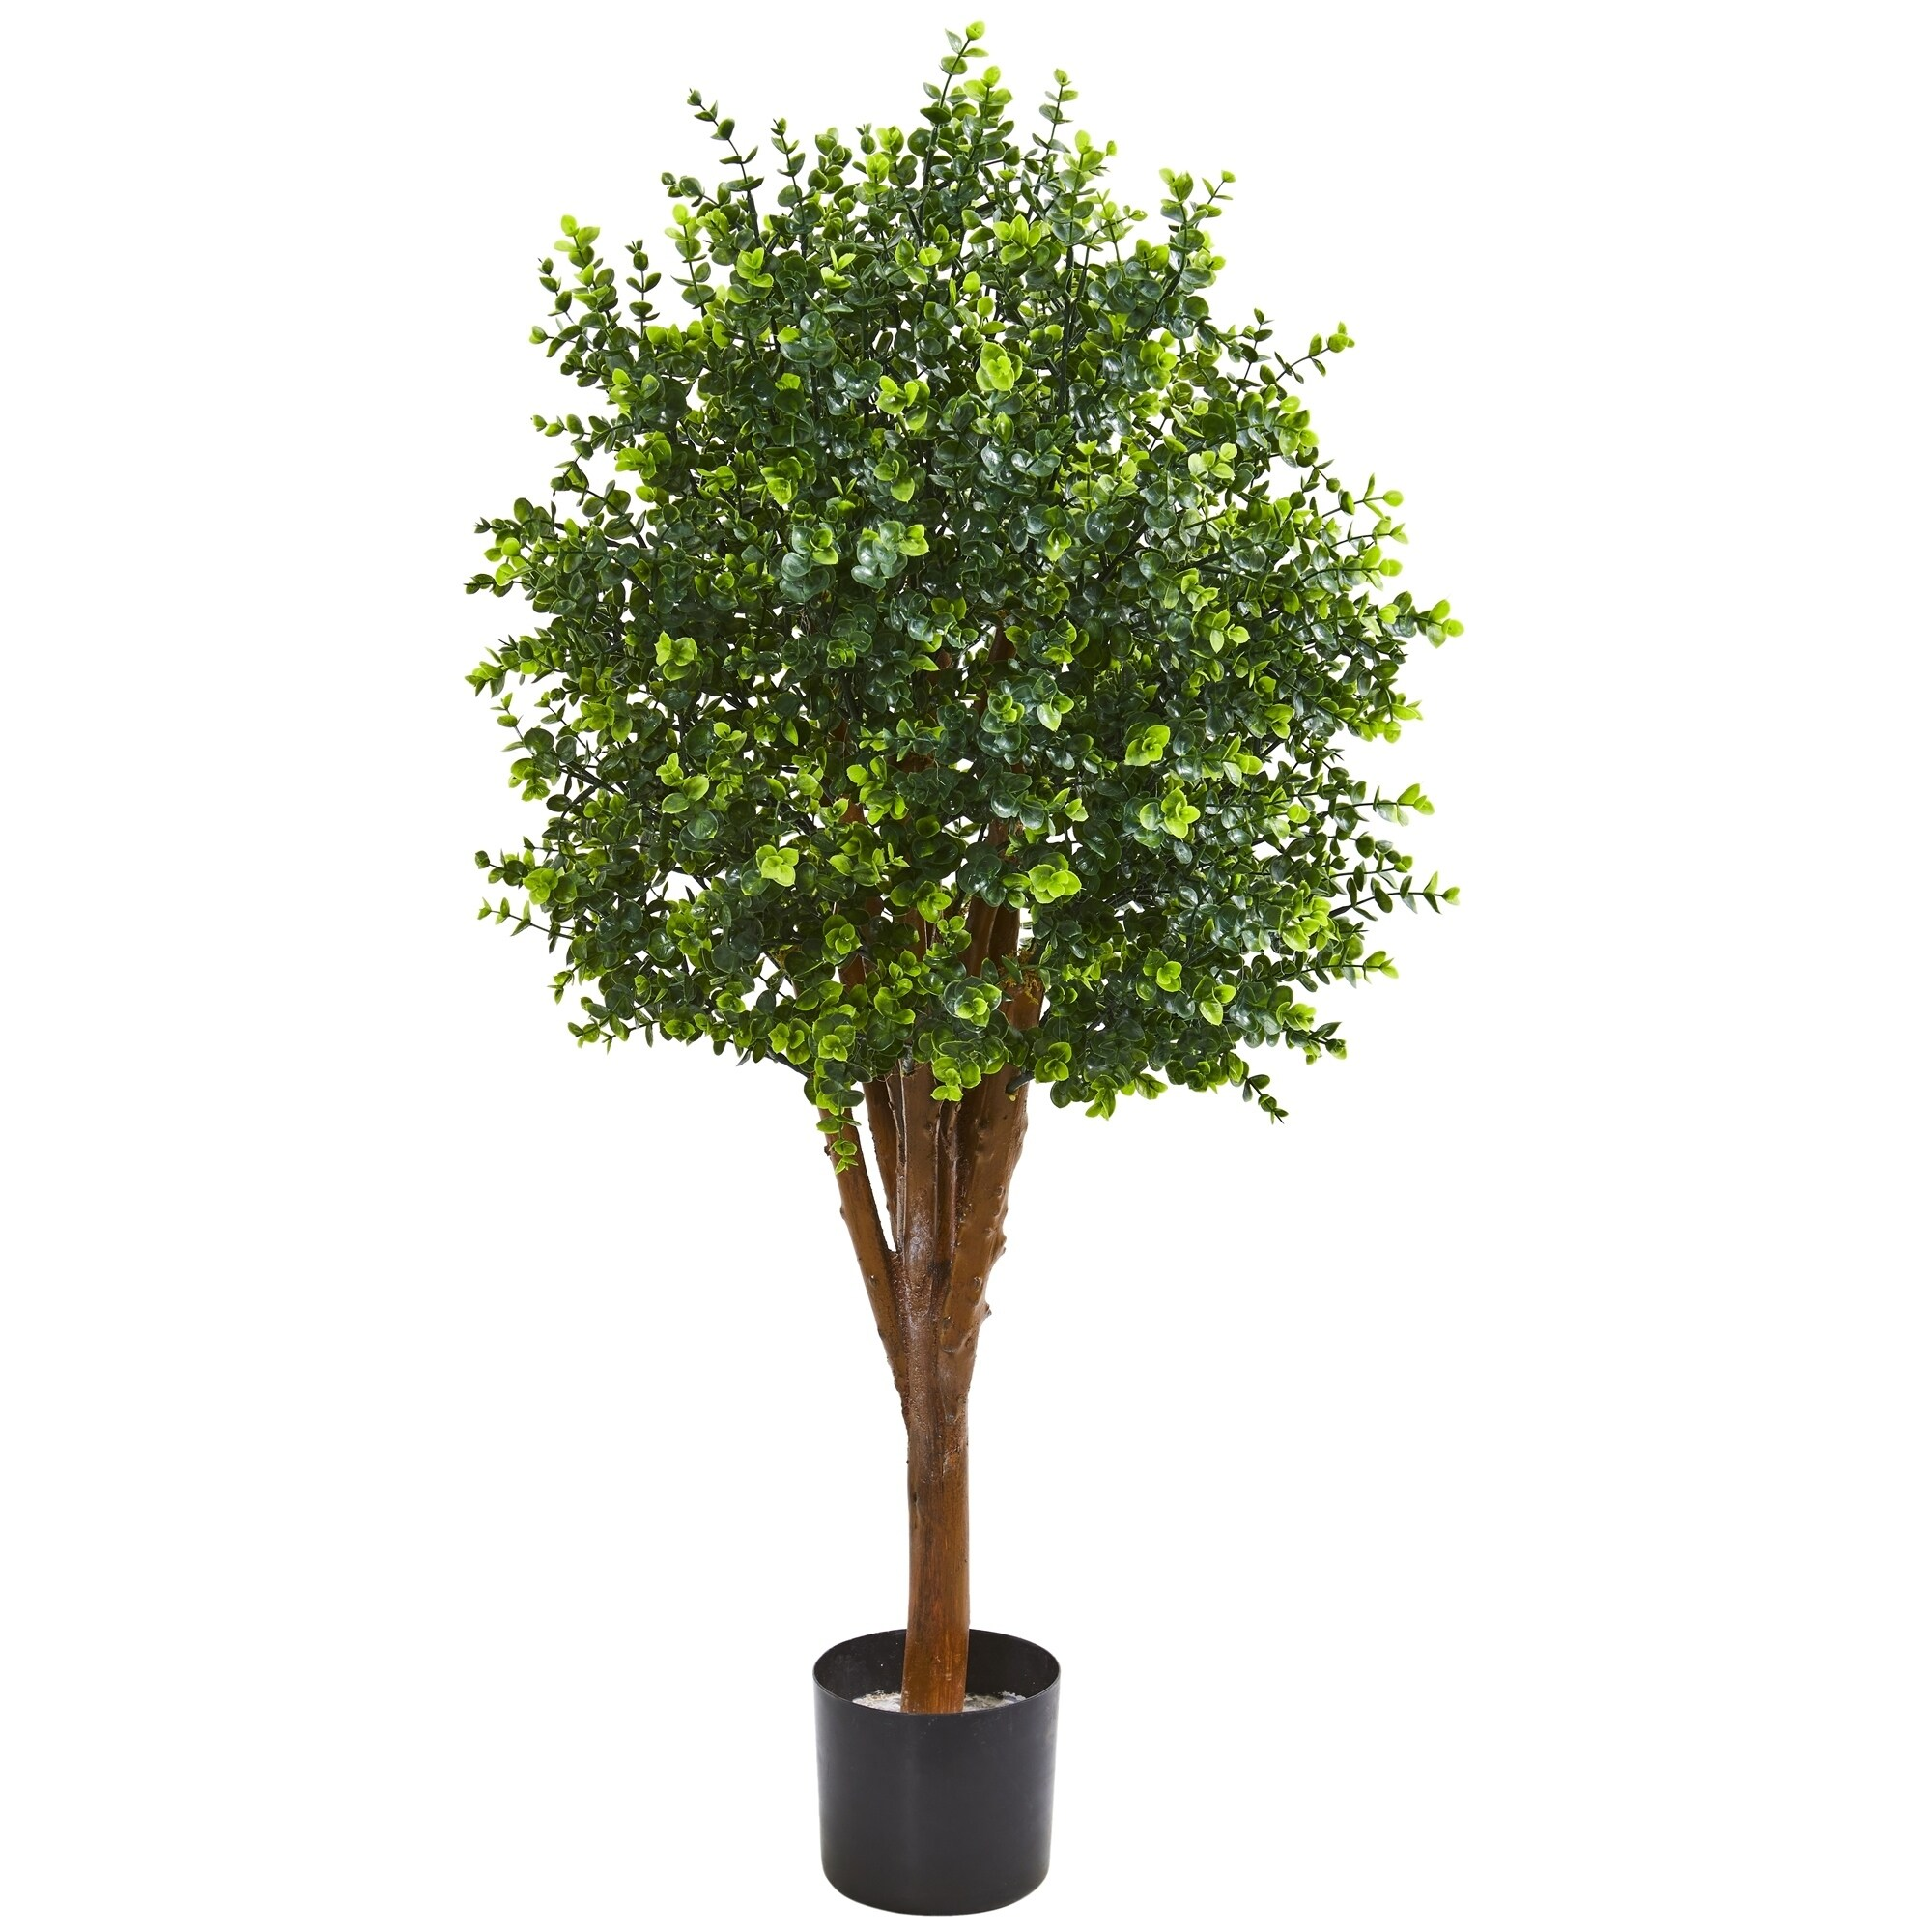 4 Eucalyptus Artificial Tree UV Resistant Indoor/Outdoor)